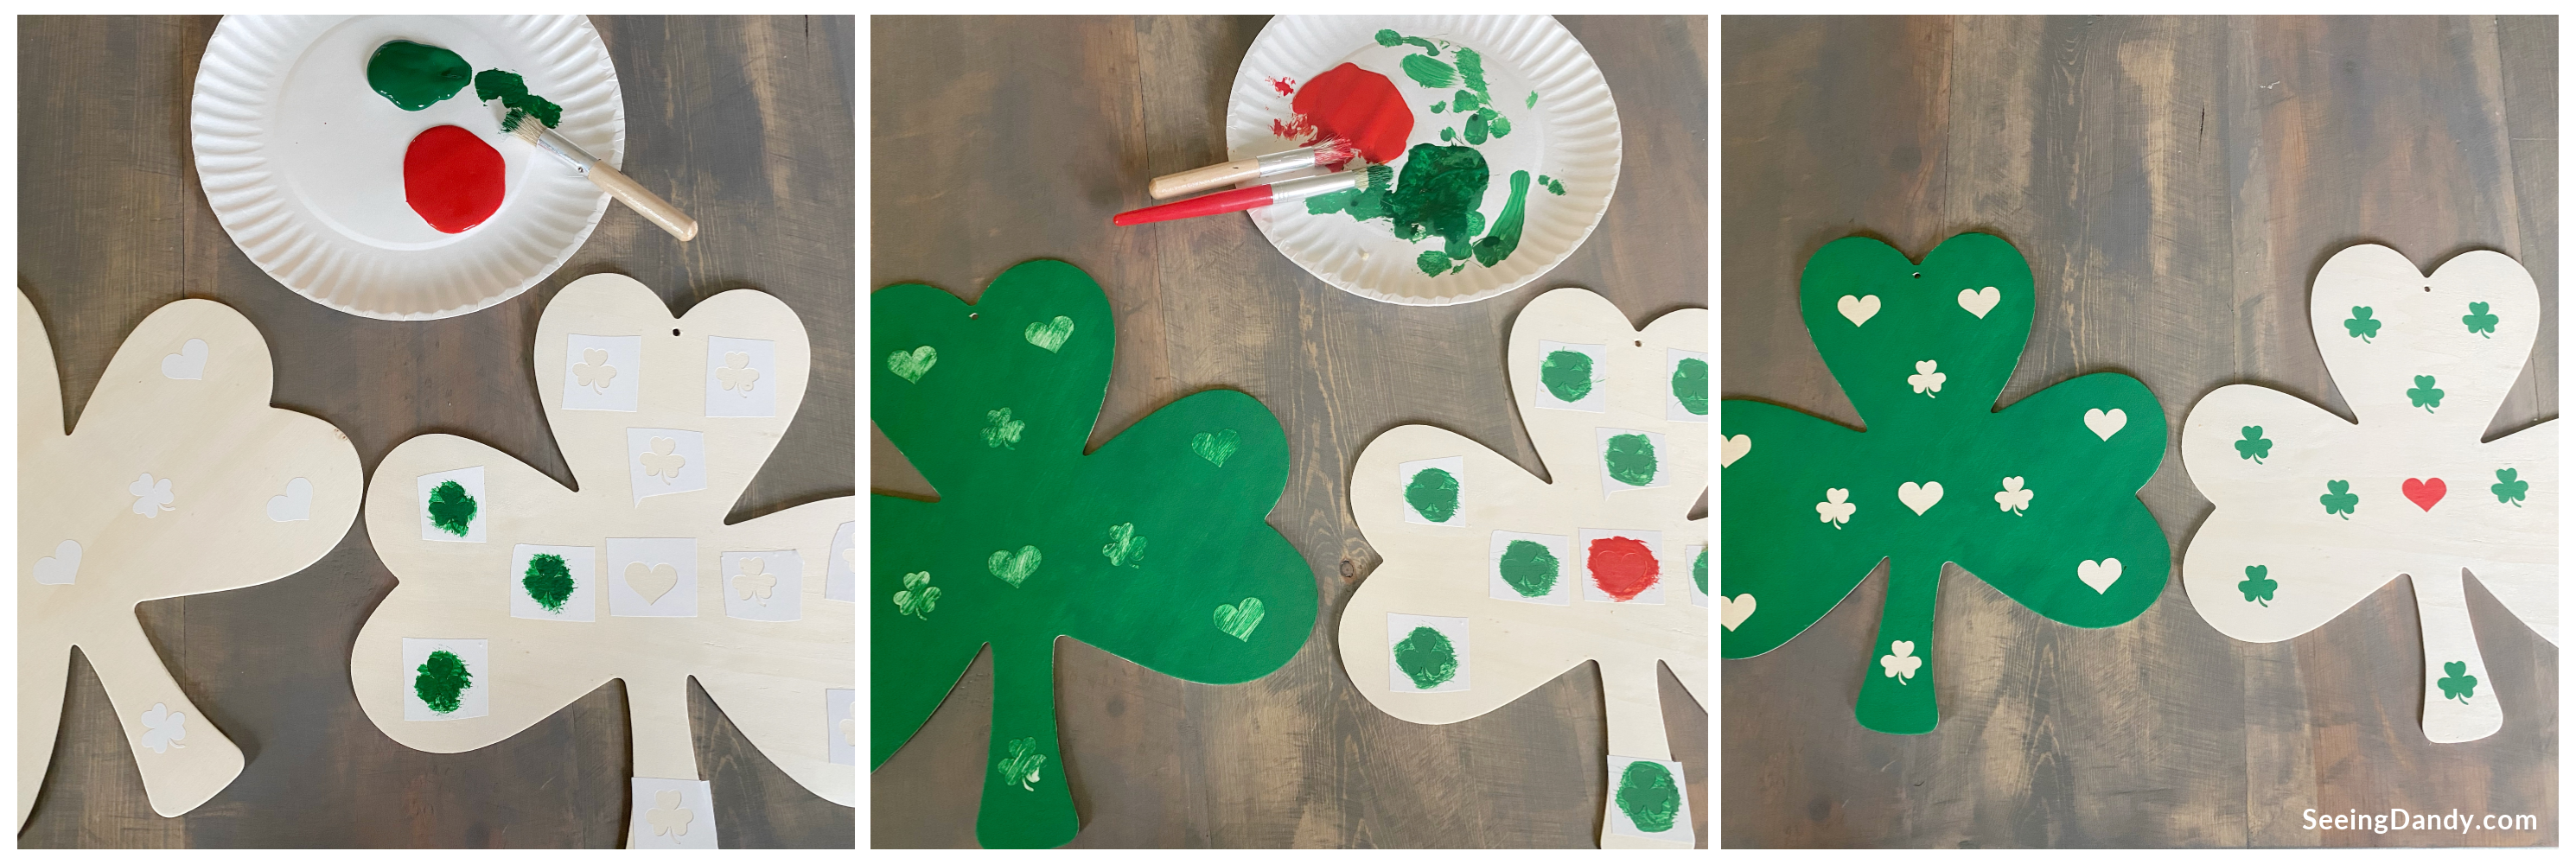 Farmhouse style shamrock craft with vinyl and paint